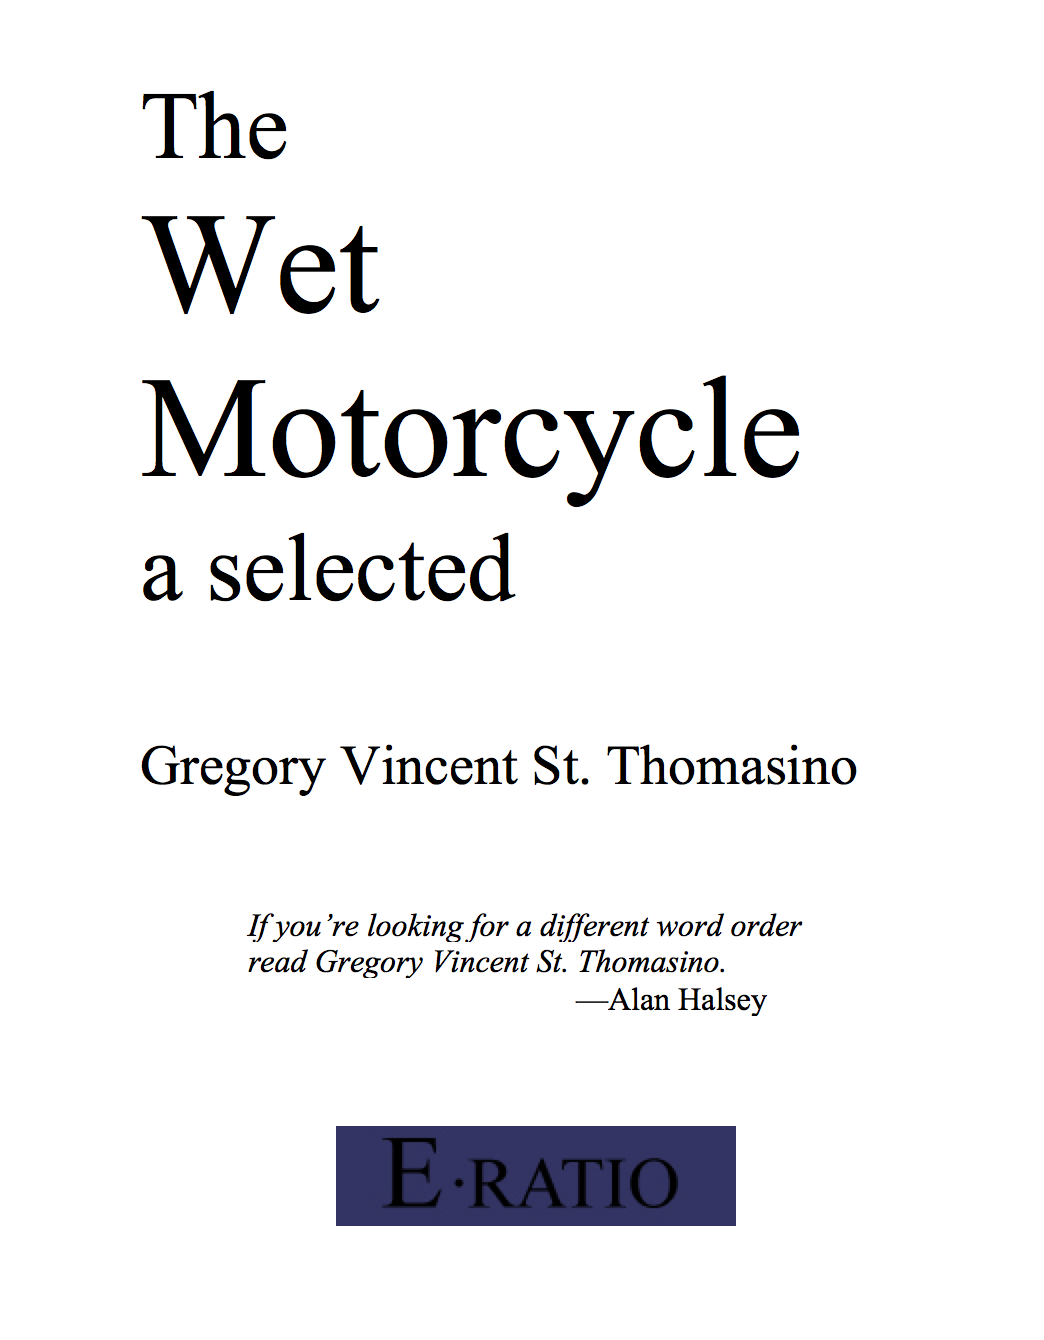 The wet motorcycle